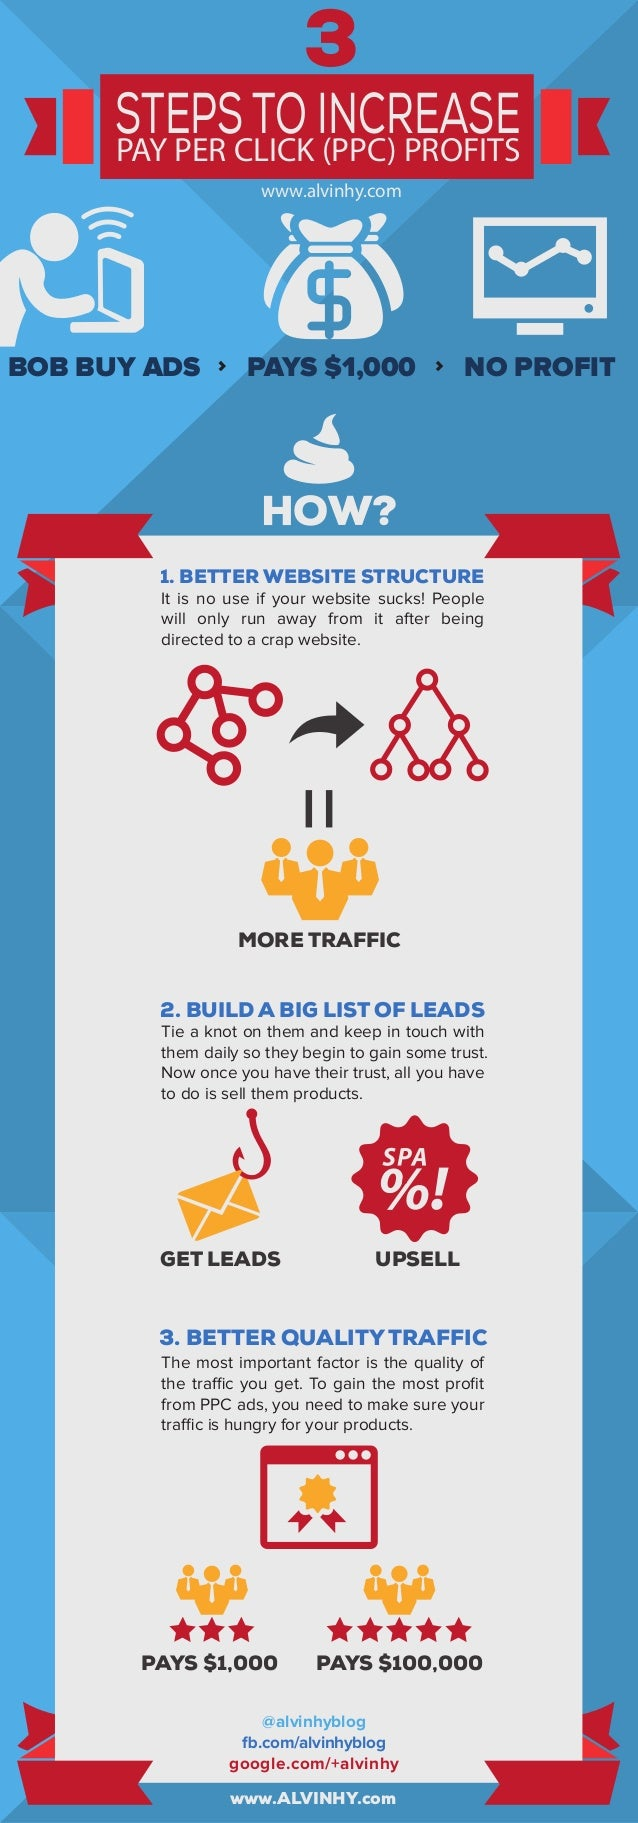 1. BETTER WEBSITE STRUCTURE MORE TRAFFIC GET LEADS PAYS $1,000 www.ALVINHY.com UPSELL www.alvinhy.com 3 HOW? BOB BUY ADS P...